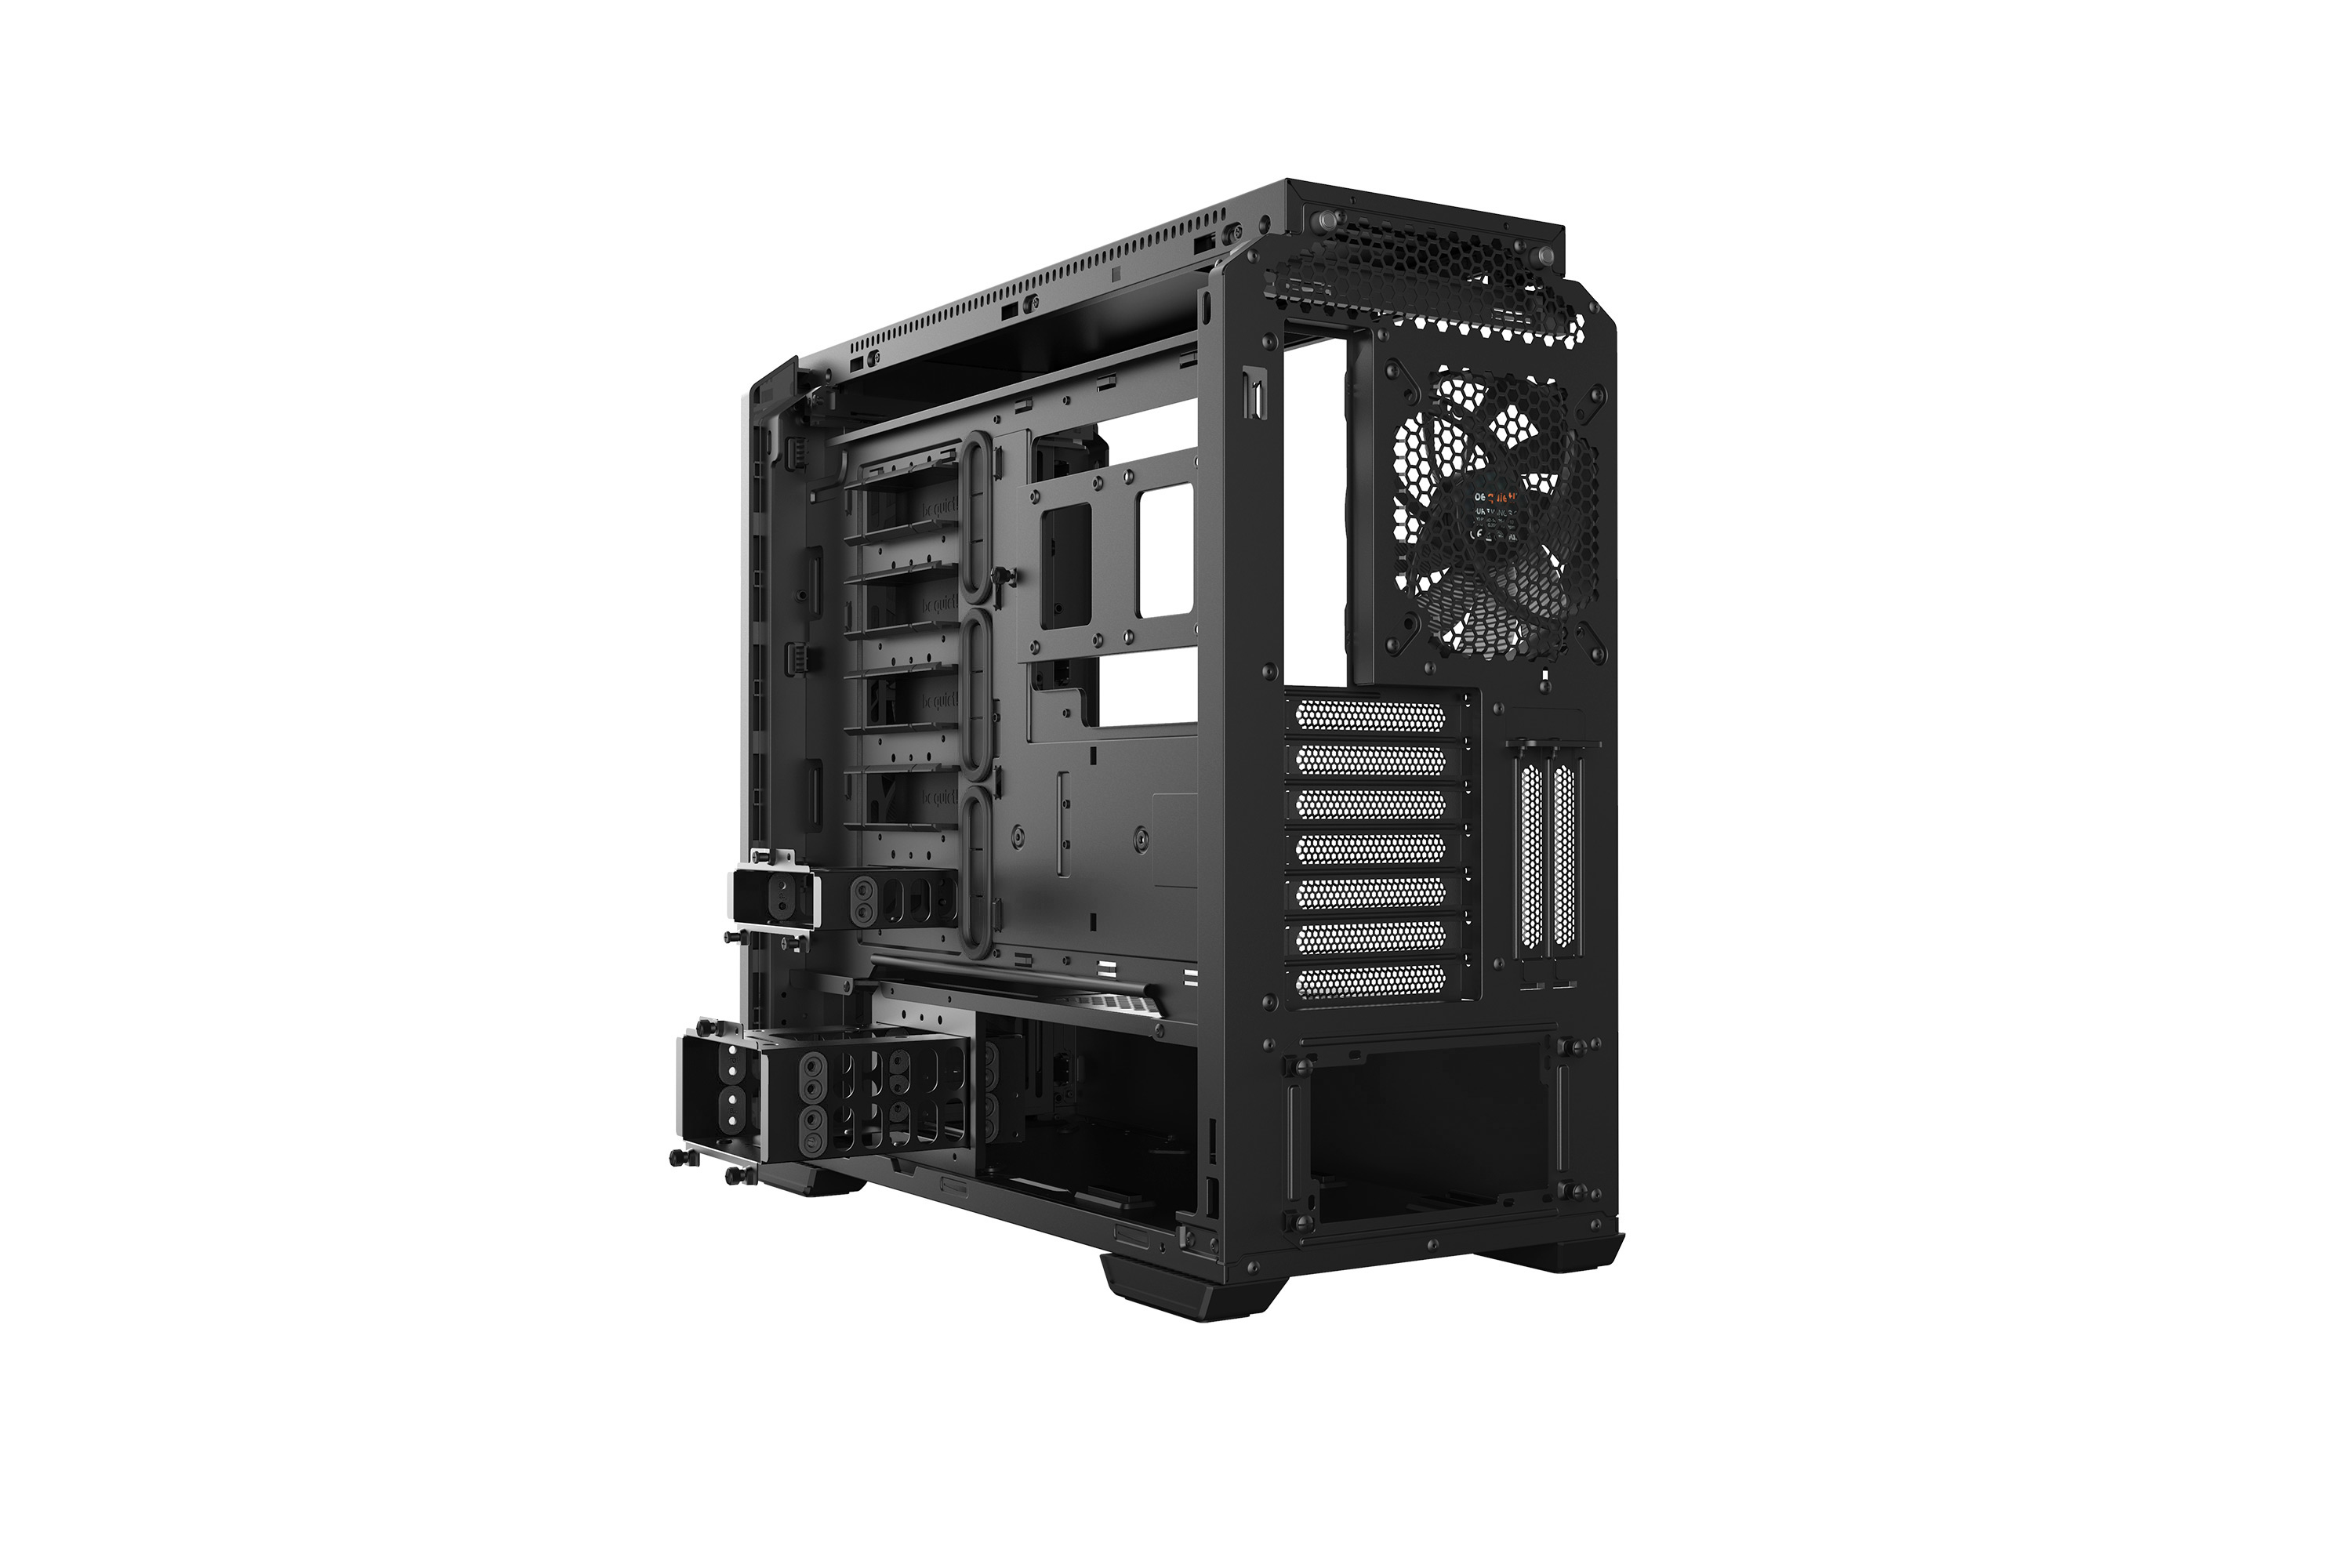 be quiet! Silent Base 601 Window Black, 532 x 240 x 514, IO-panel 2x USB 3.0, 1x USB 2.0, HD Audio, 3 (7) x 3,5, 6 (14) x 2,5, inc 2x 140 mm Pure Wings 2, dual air channel cooling, Tinted and Tempered Glass side panel